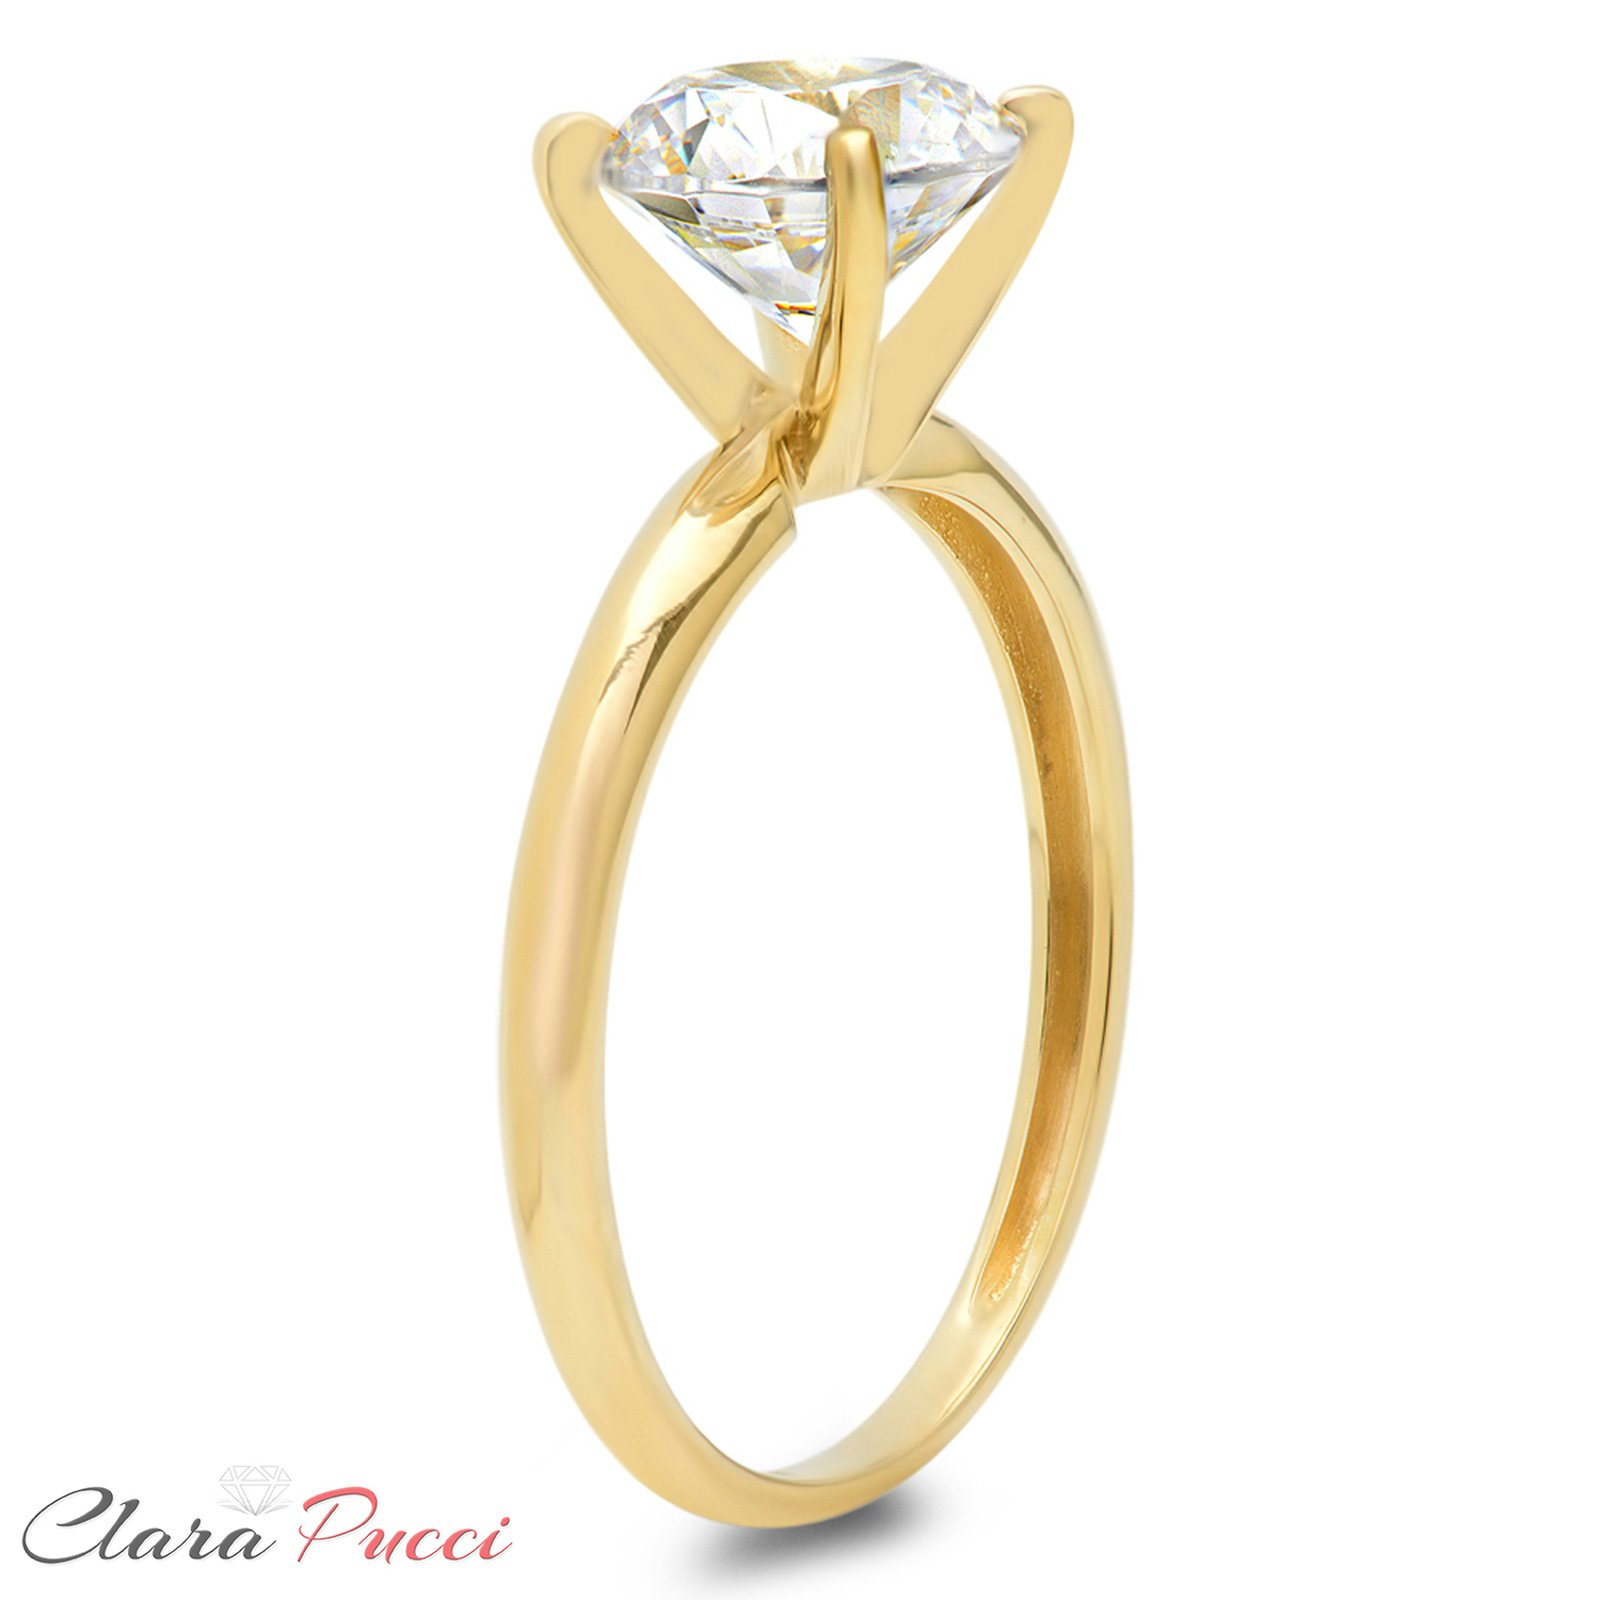 Clara Pucci 2.0 CT Brilliant Round Cut Simulated Diamond CZ Designer 4-Prong Solitaire Anniversary Promise Bridal Wedding Ring Solid 14k Yellow Gold by Clara Pucci (Image #6)